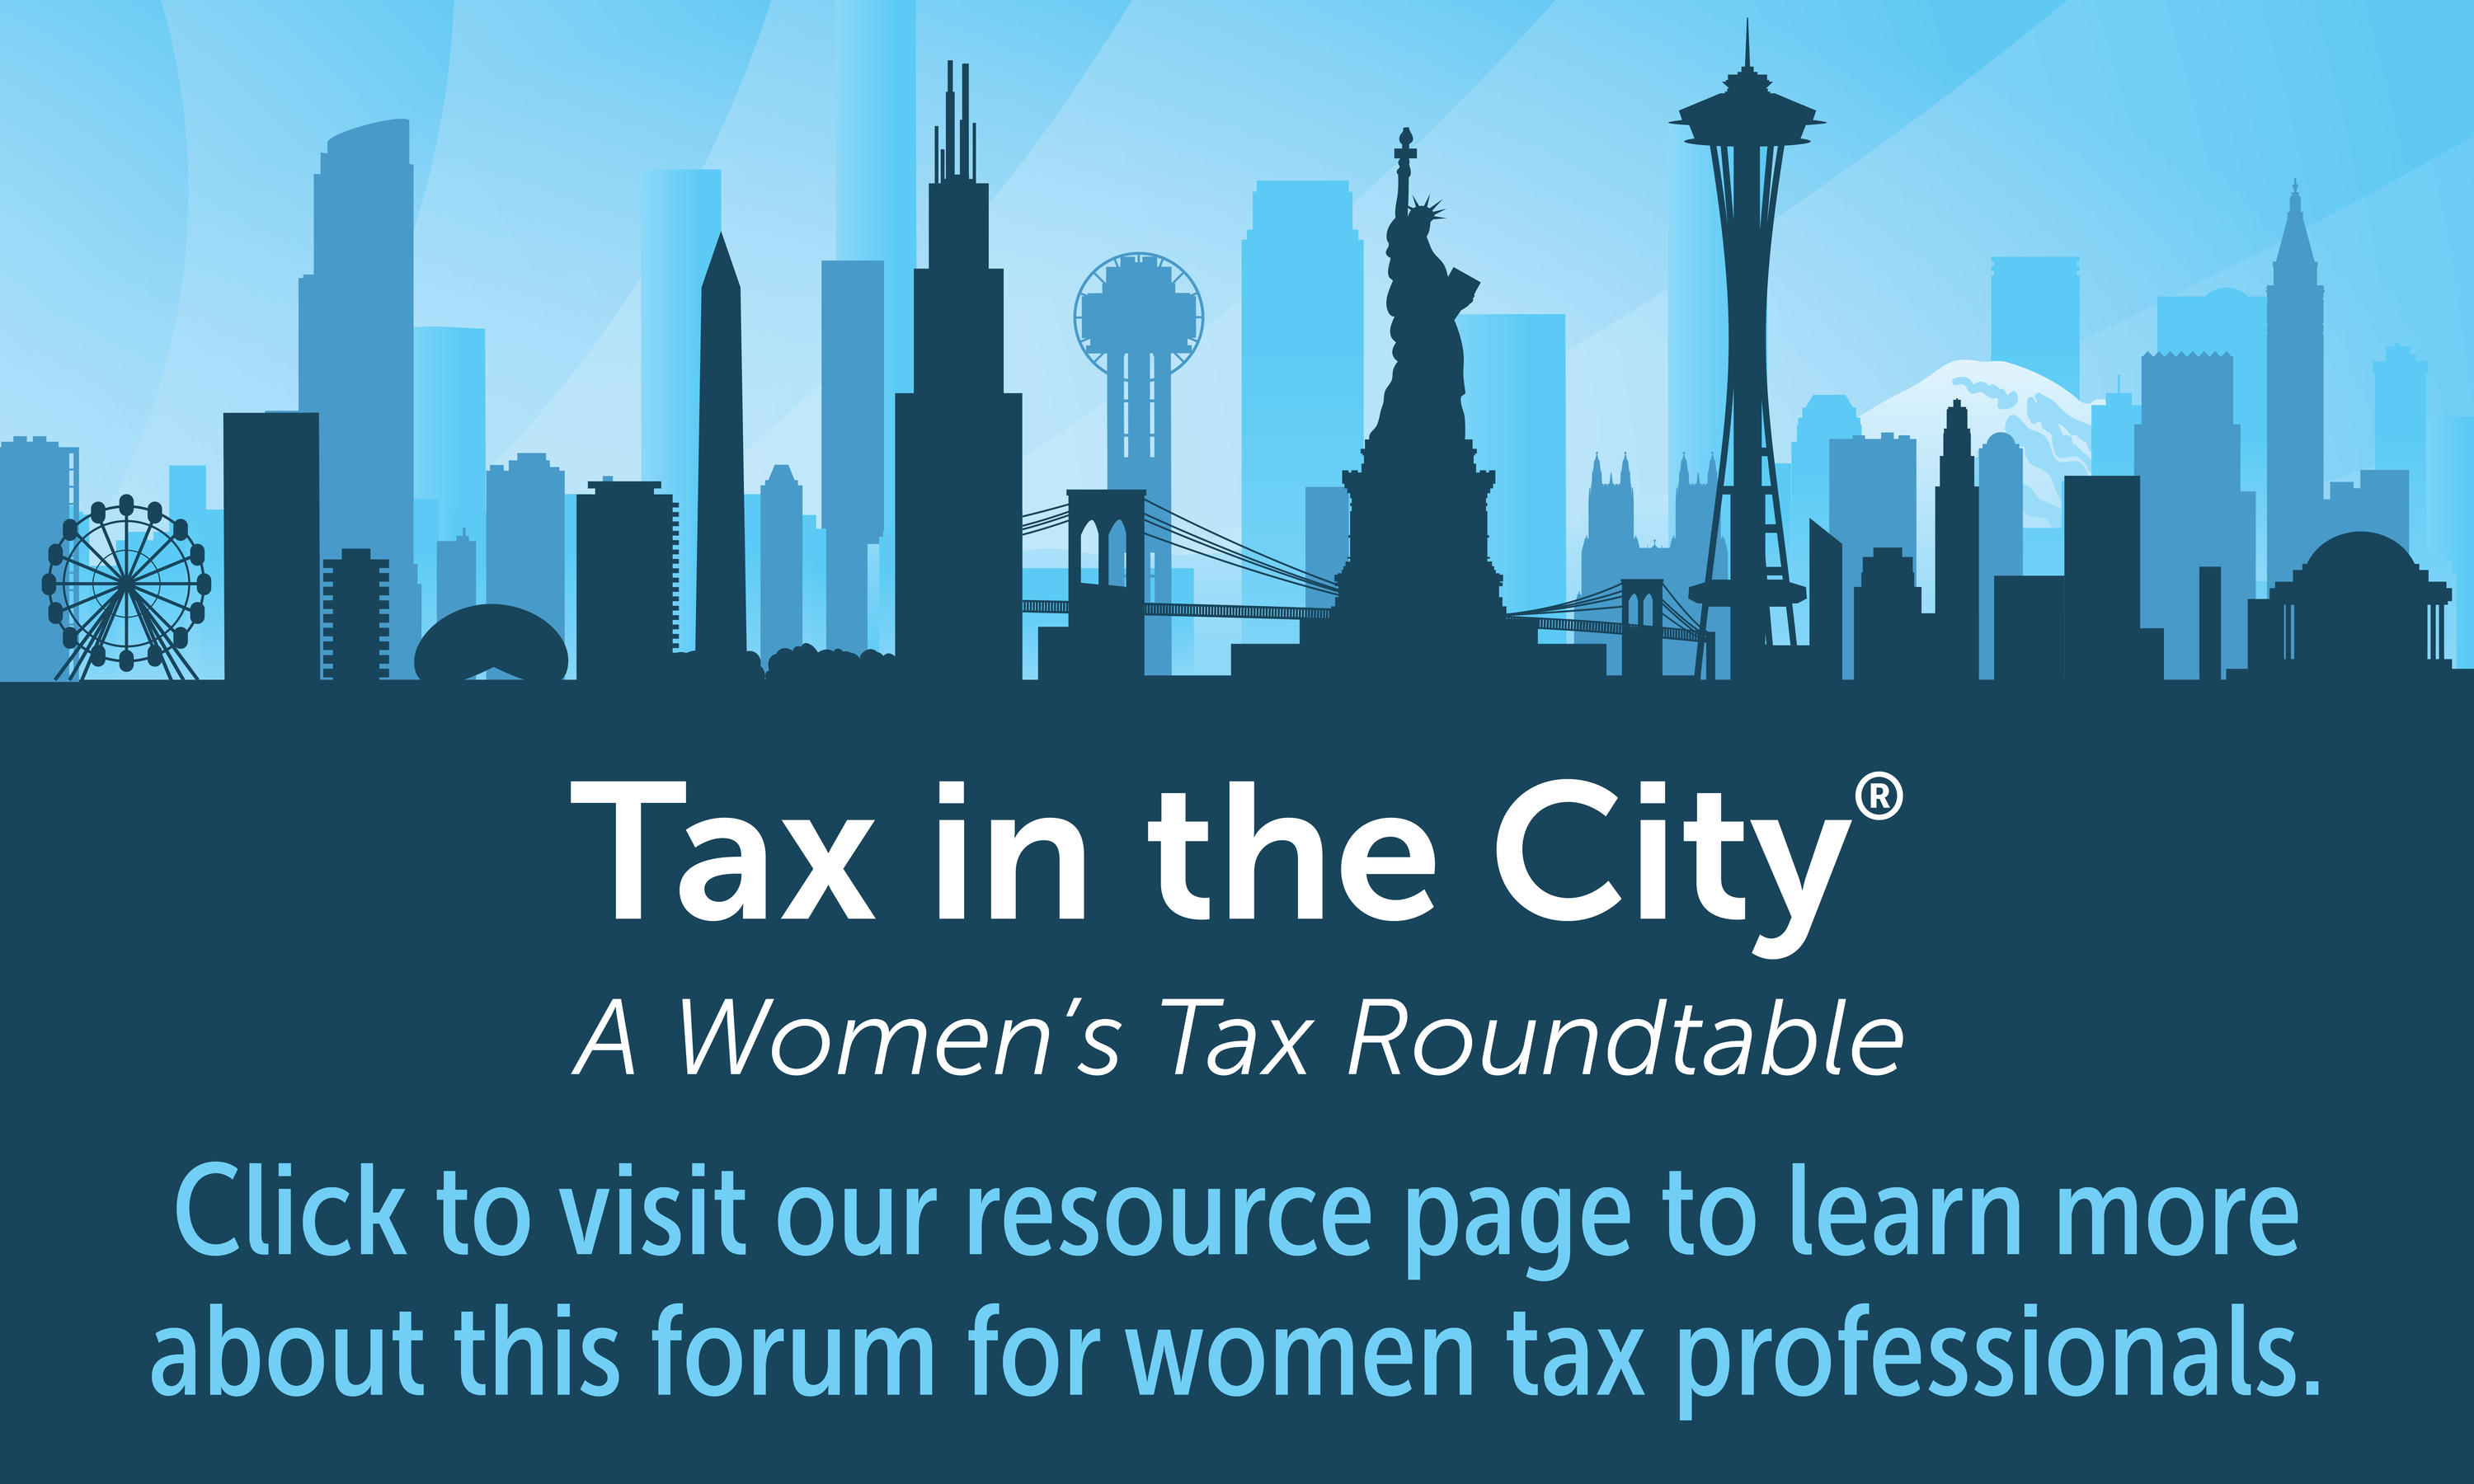 Tax in the City: A Women's Tax Roundtable